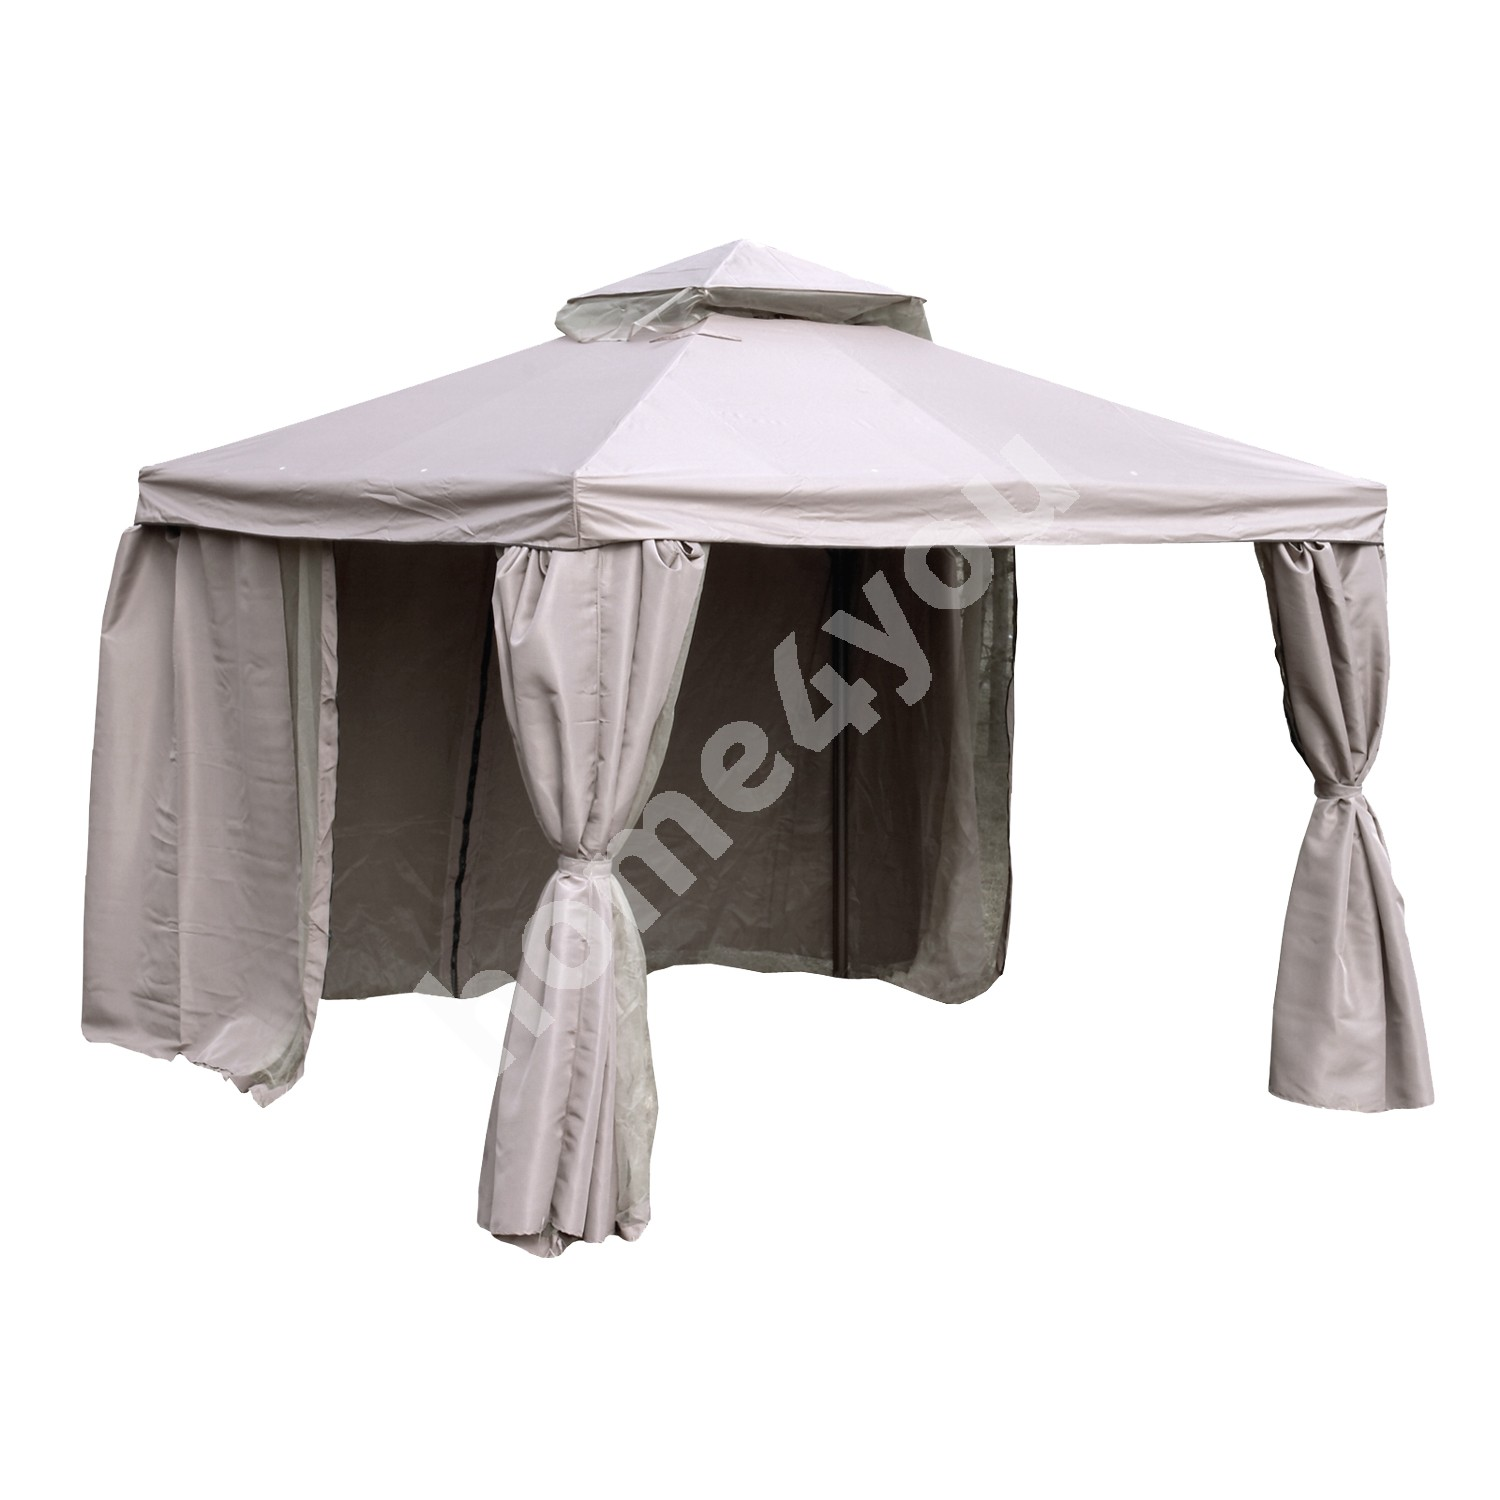 Gazebo LEGEND 3x4m, aluminum frame, roof and side walls: polyester fabric, color: beige,